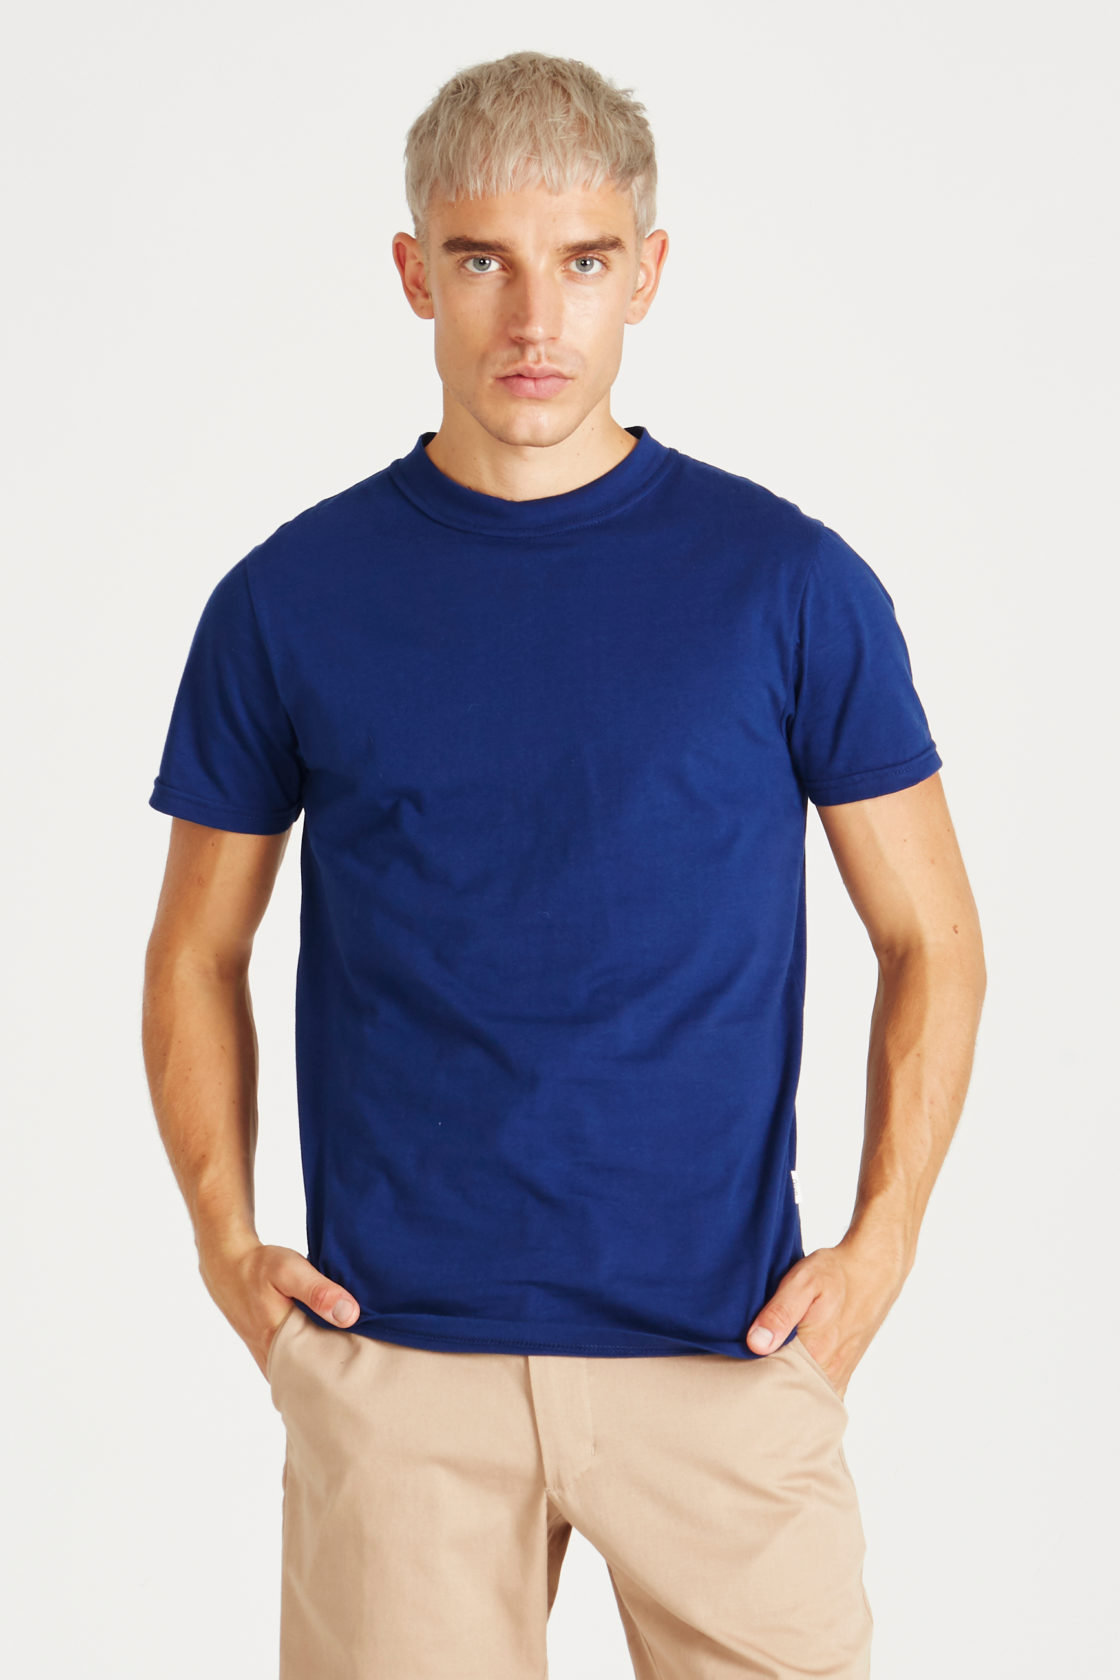 Givn T Shirt Colby Navy 1